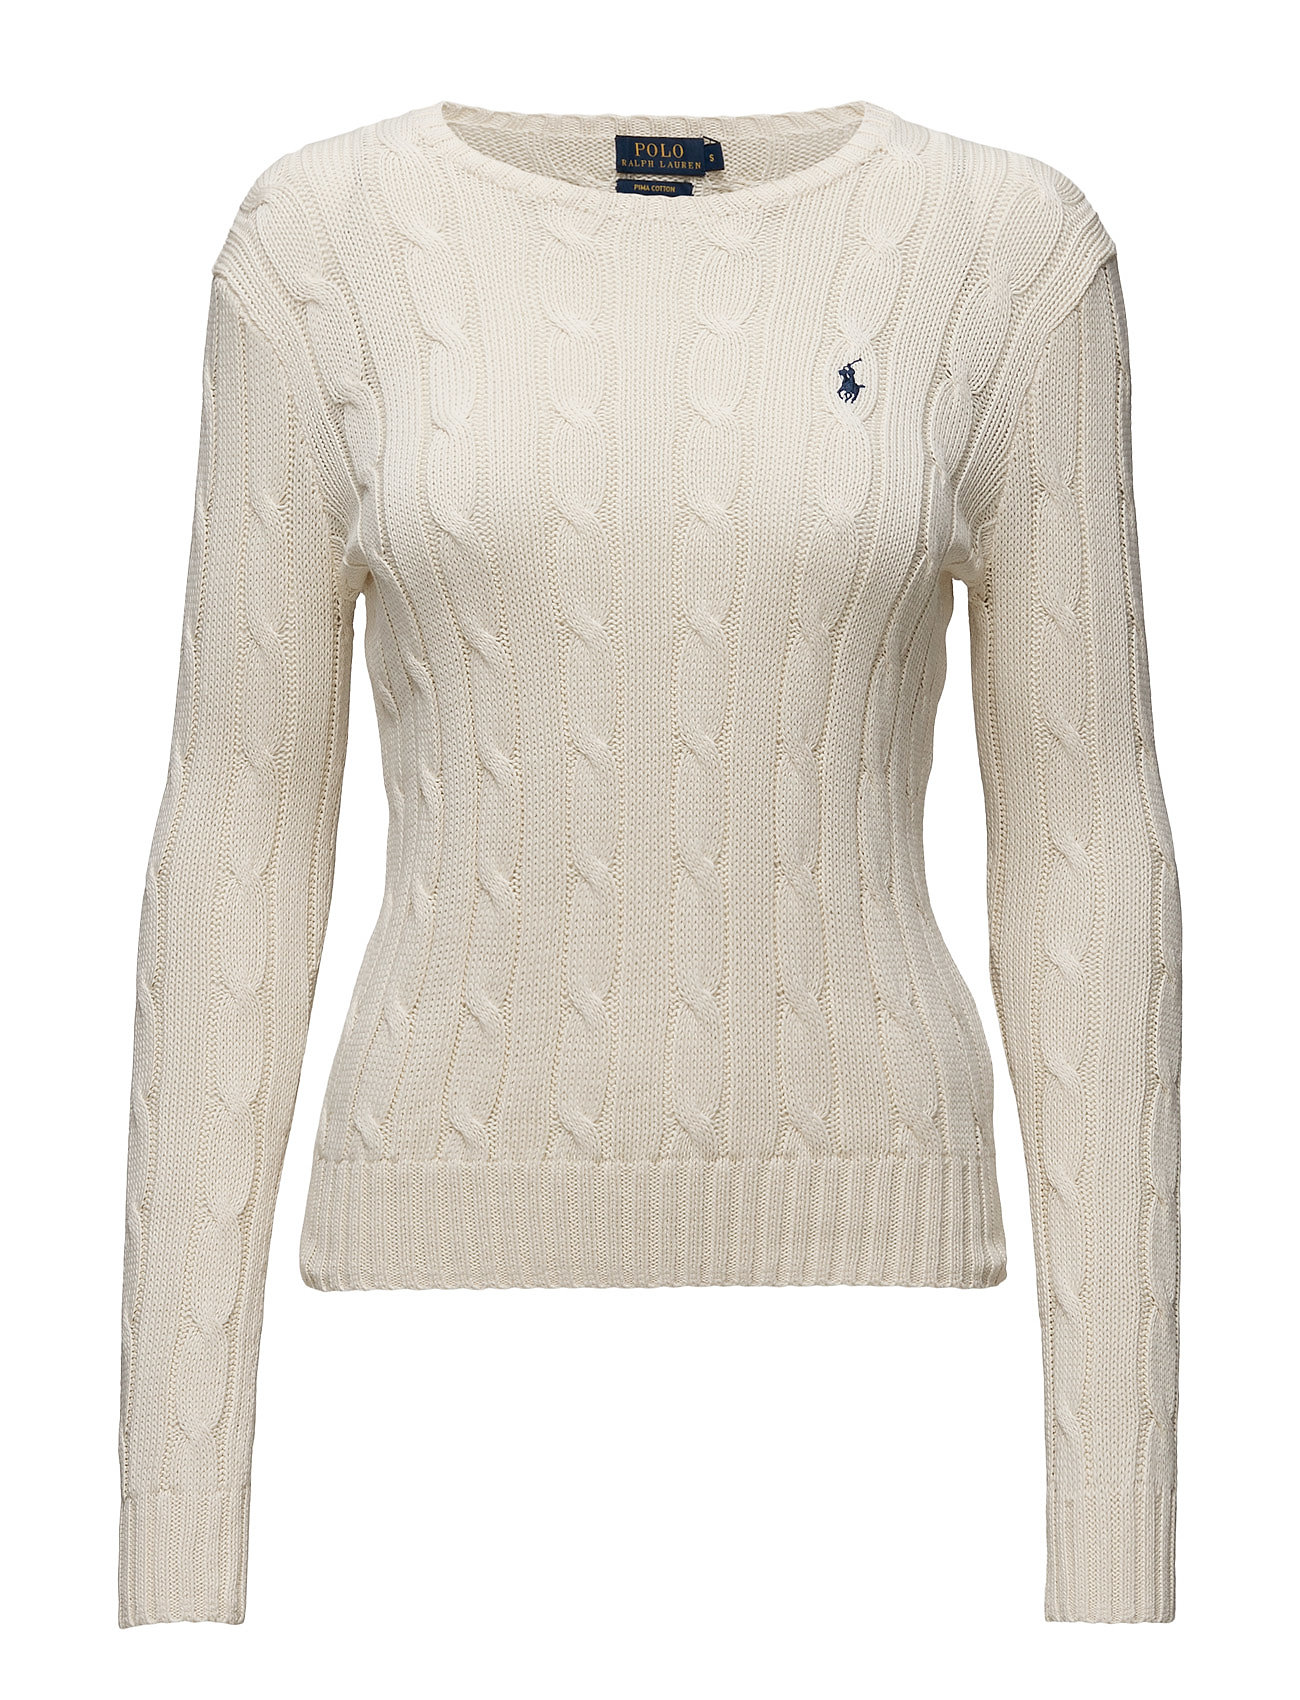 Polo Ralph Lauren Cable-Knit Cotton Sweater - CREAM